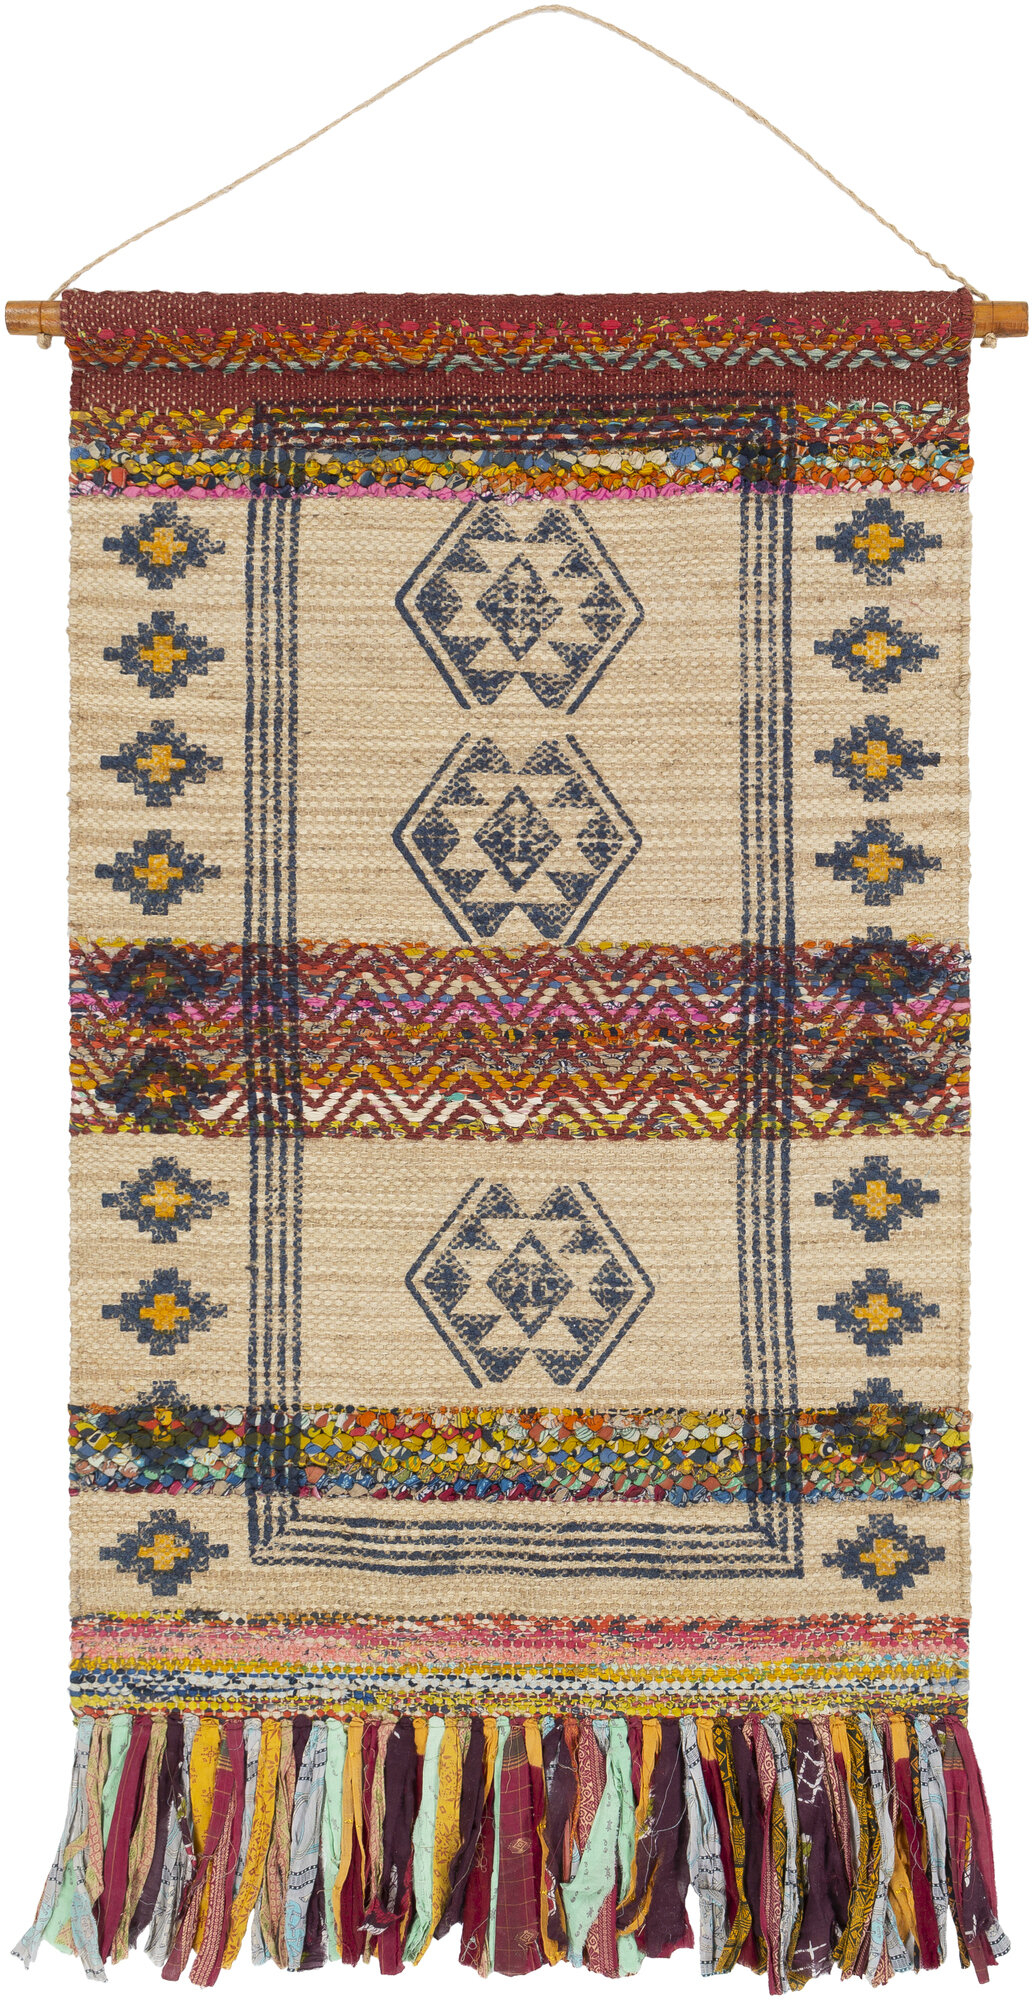 Rod Tan Tapestries You'll Love In 2021 | Wayfair For Best And Newest Blended Fabric Teresina Wool And Viscose Wall Hangings With Hanging Accessories Included (View 17 of 20)